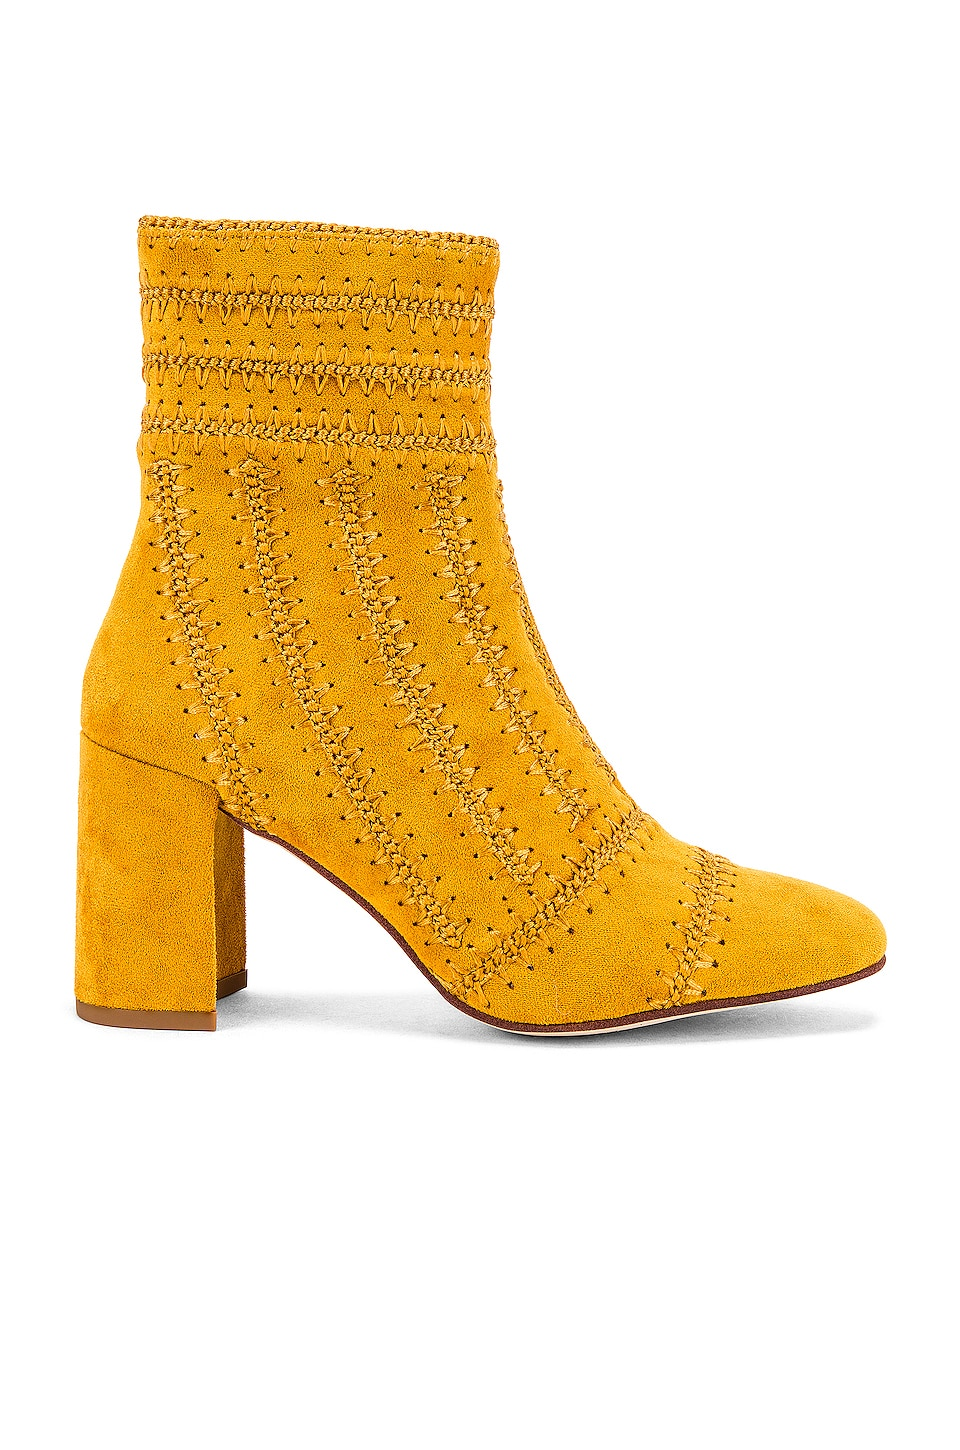 Jeffrey Campbell Grateful Bootie in Mustard